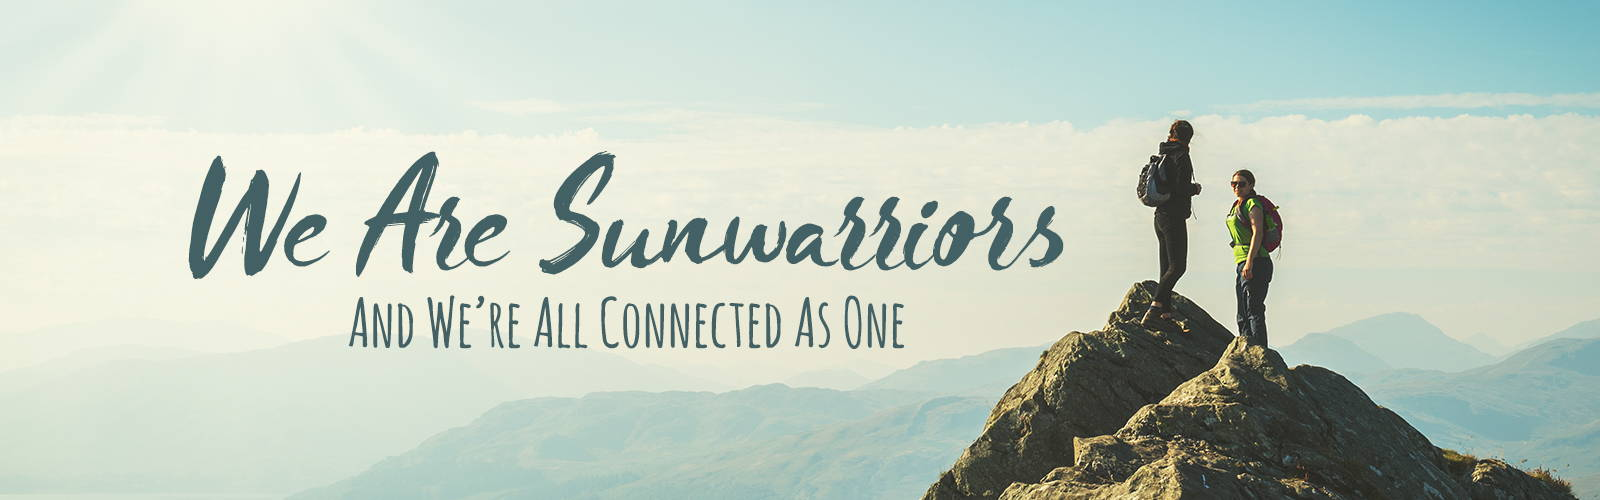 We are the Sunwarriors